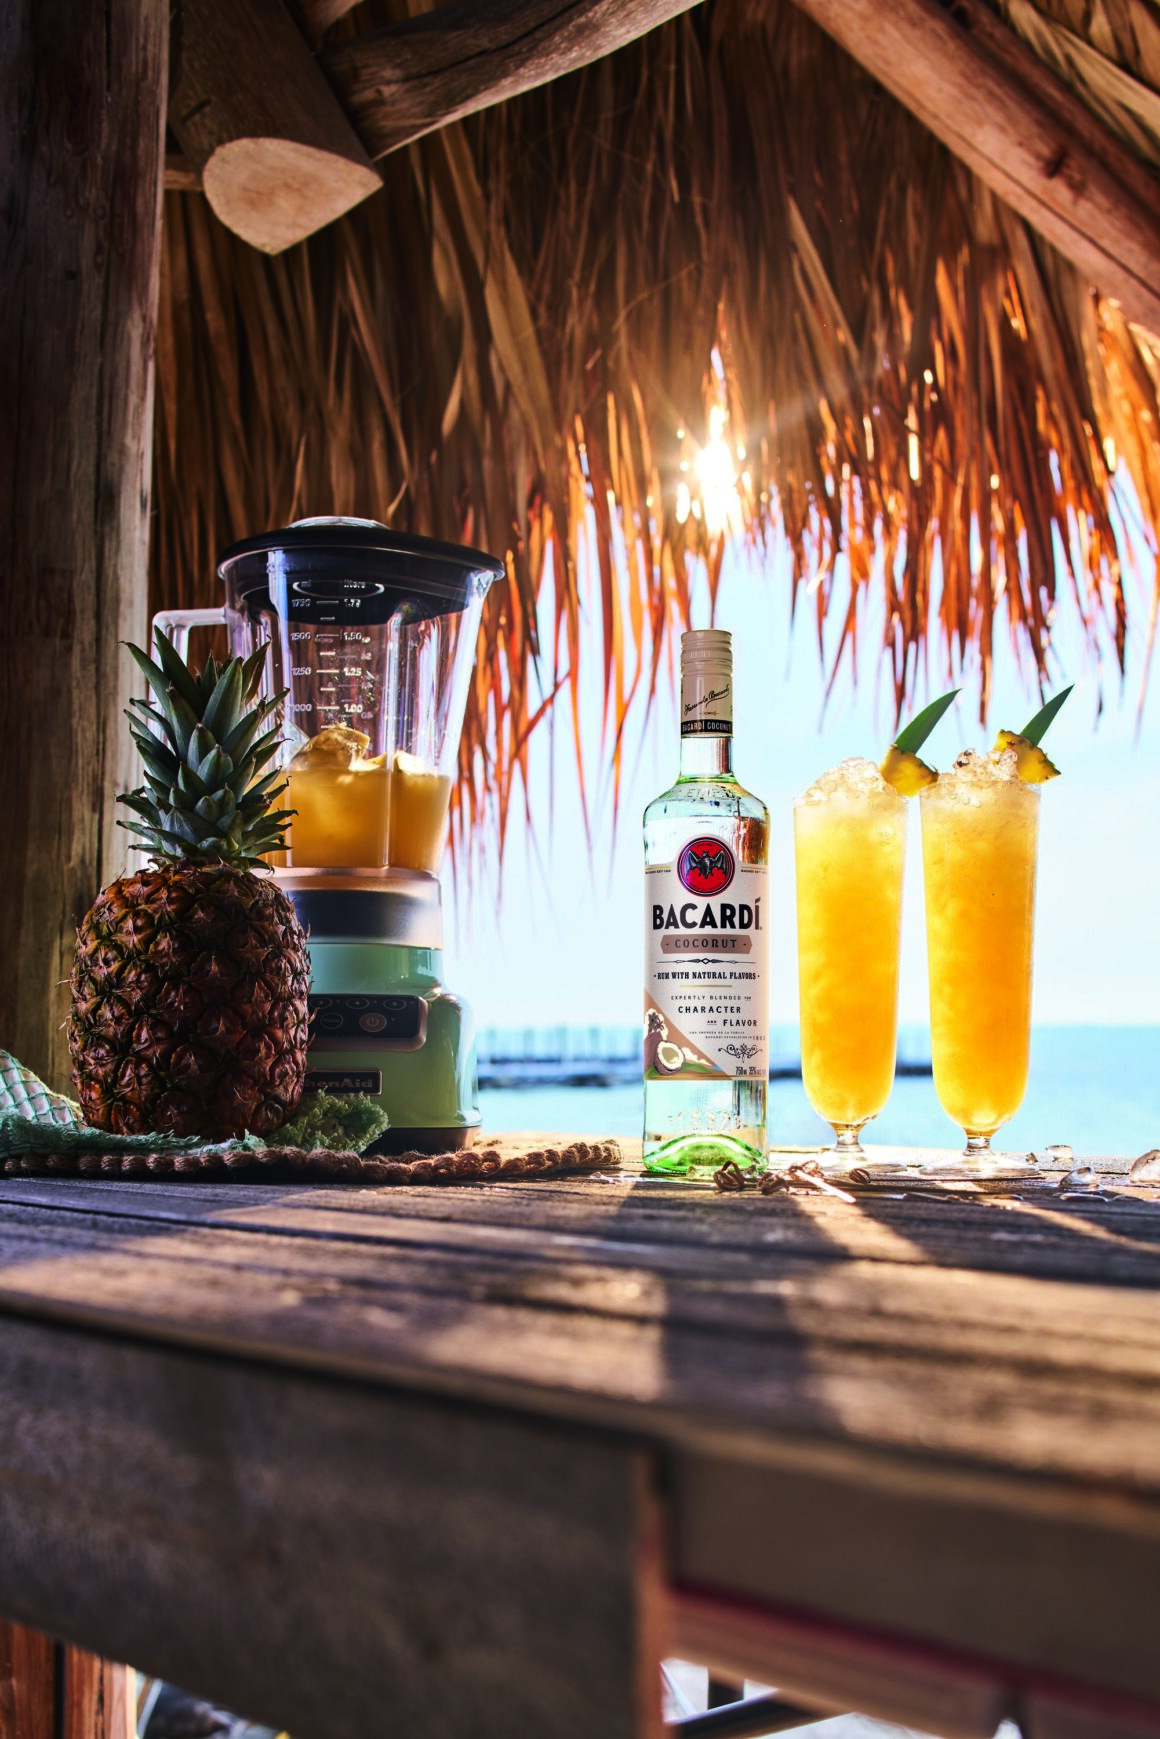 Enjoy the nation's favourite al-fresco summer sippers with friends - BACARDÍ Rum Piña Colada